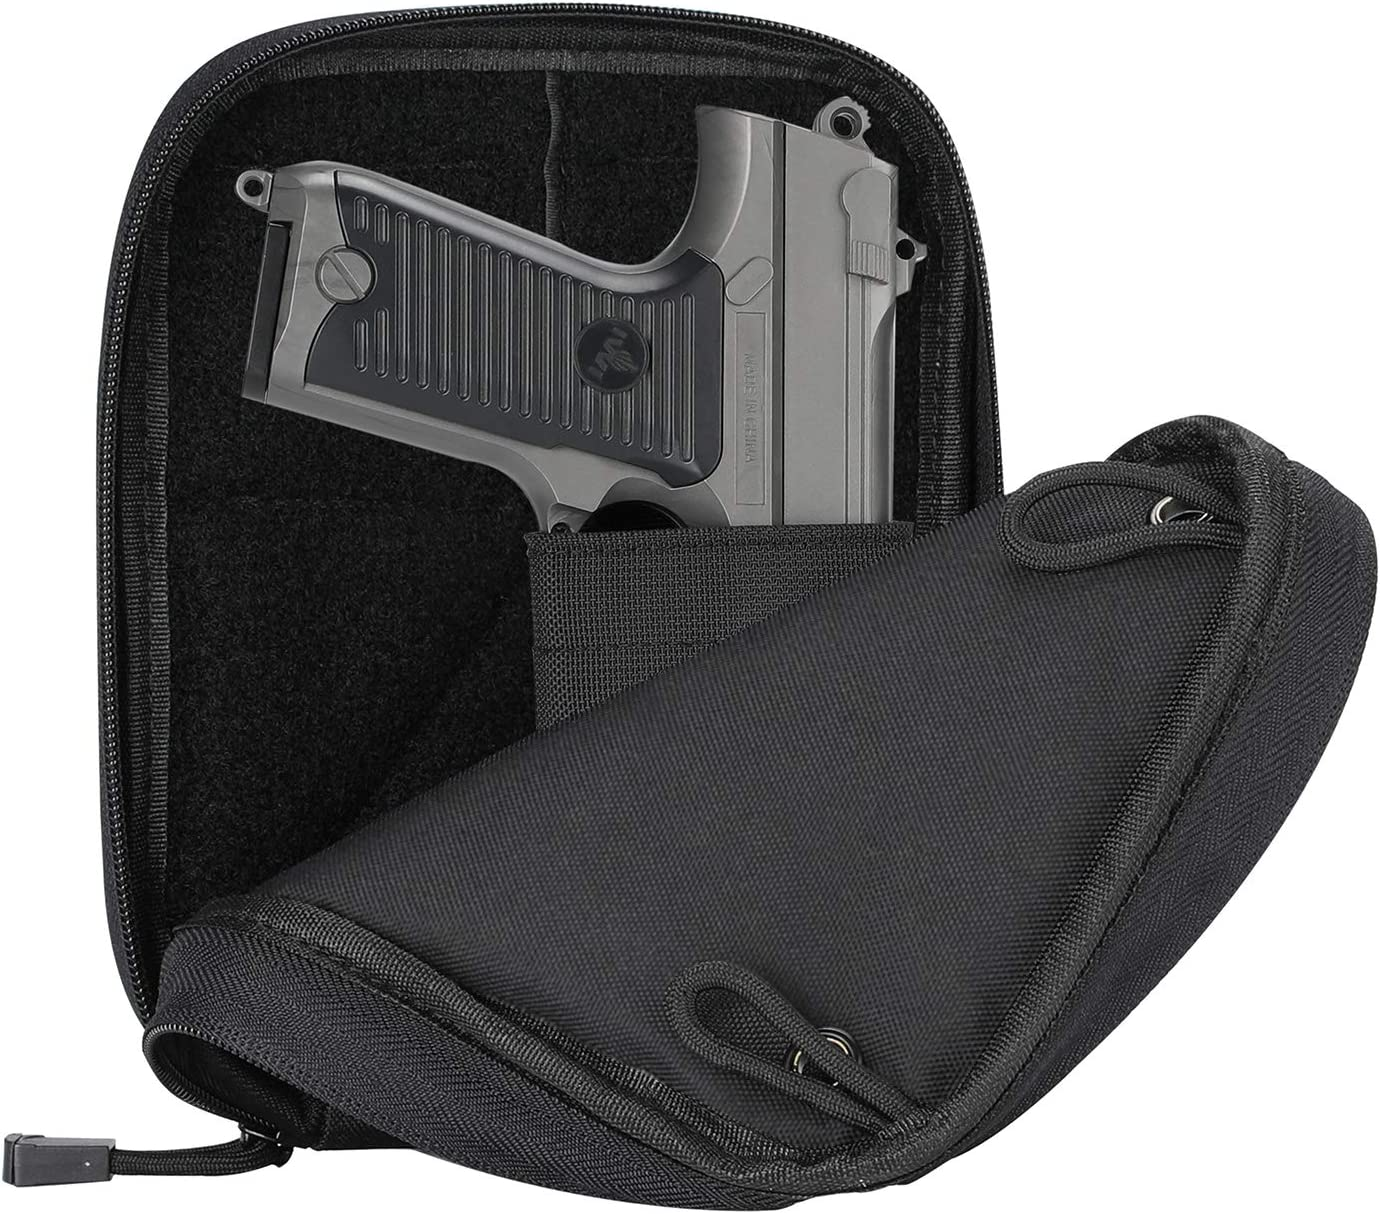 ProCase Concealed Gun Pouch, Multipurpose Carry Pistol Holster Fanny Pack Waist Bag for Handgun with Belt Loops : Sports & Outdoors